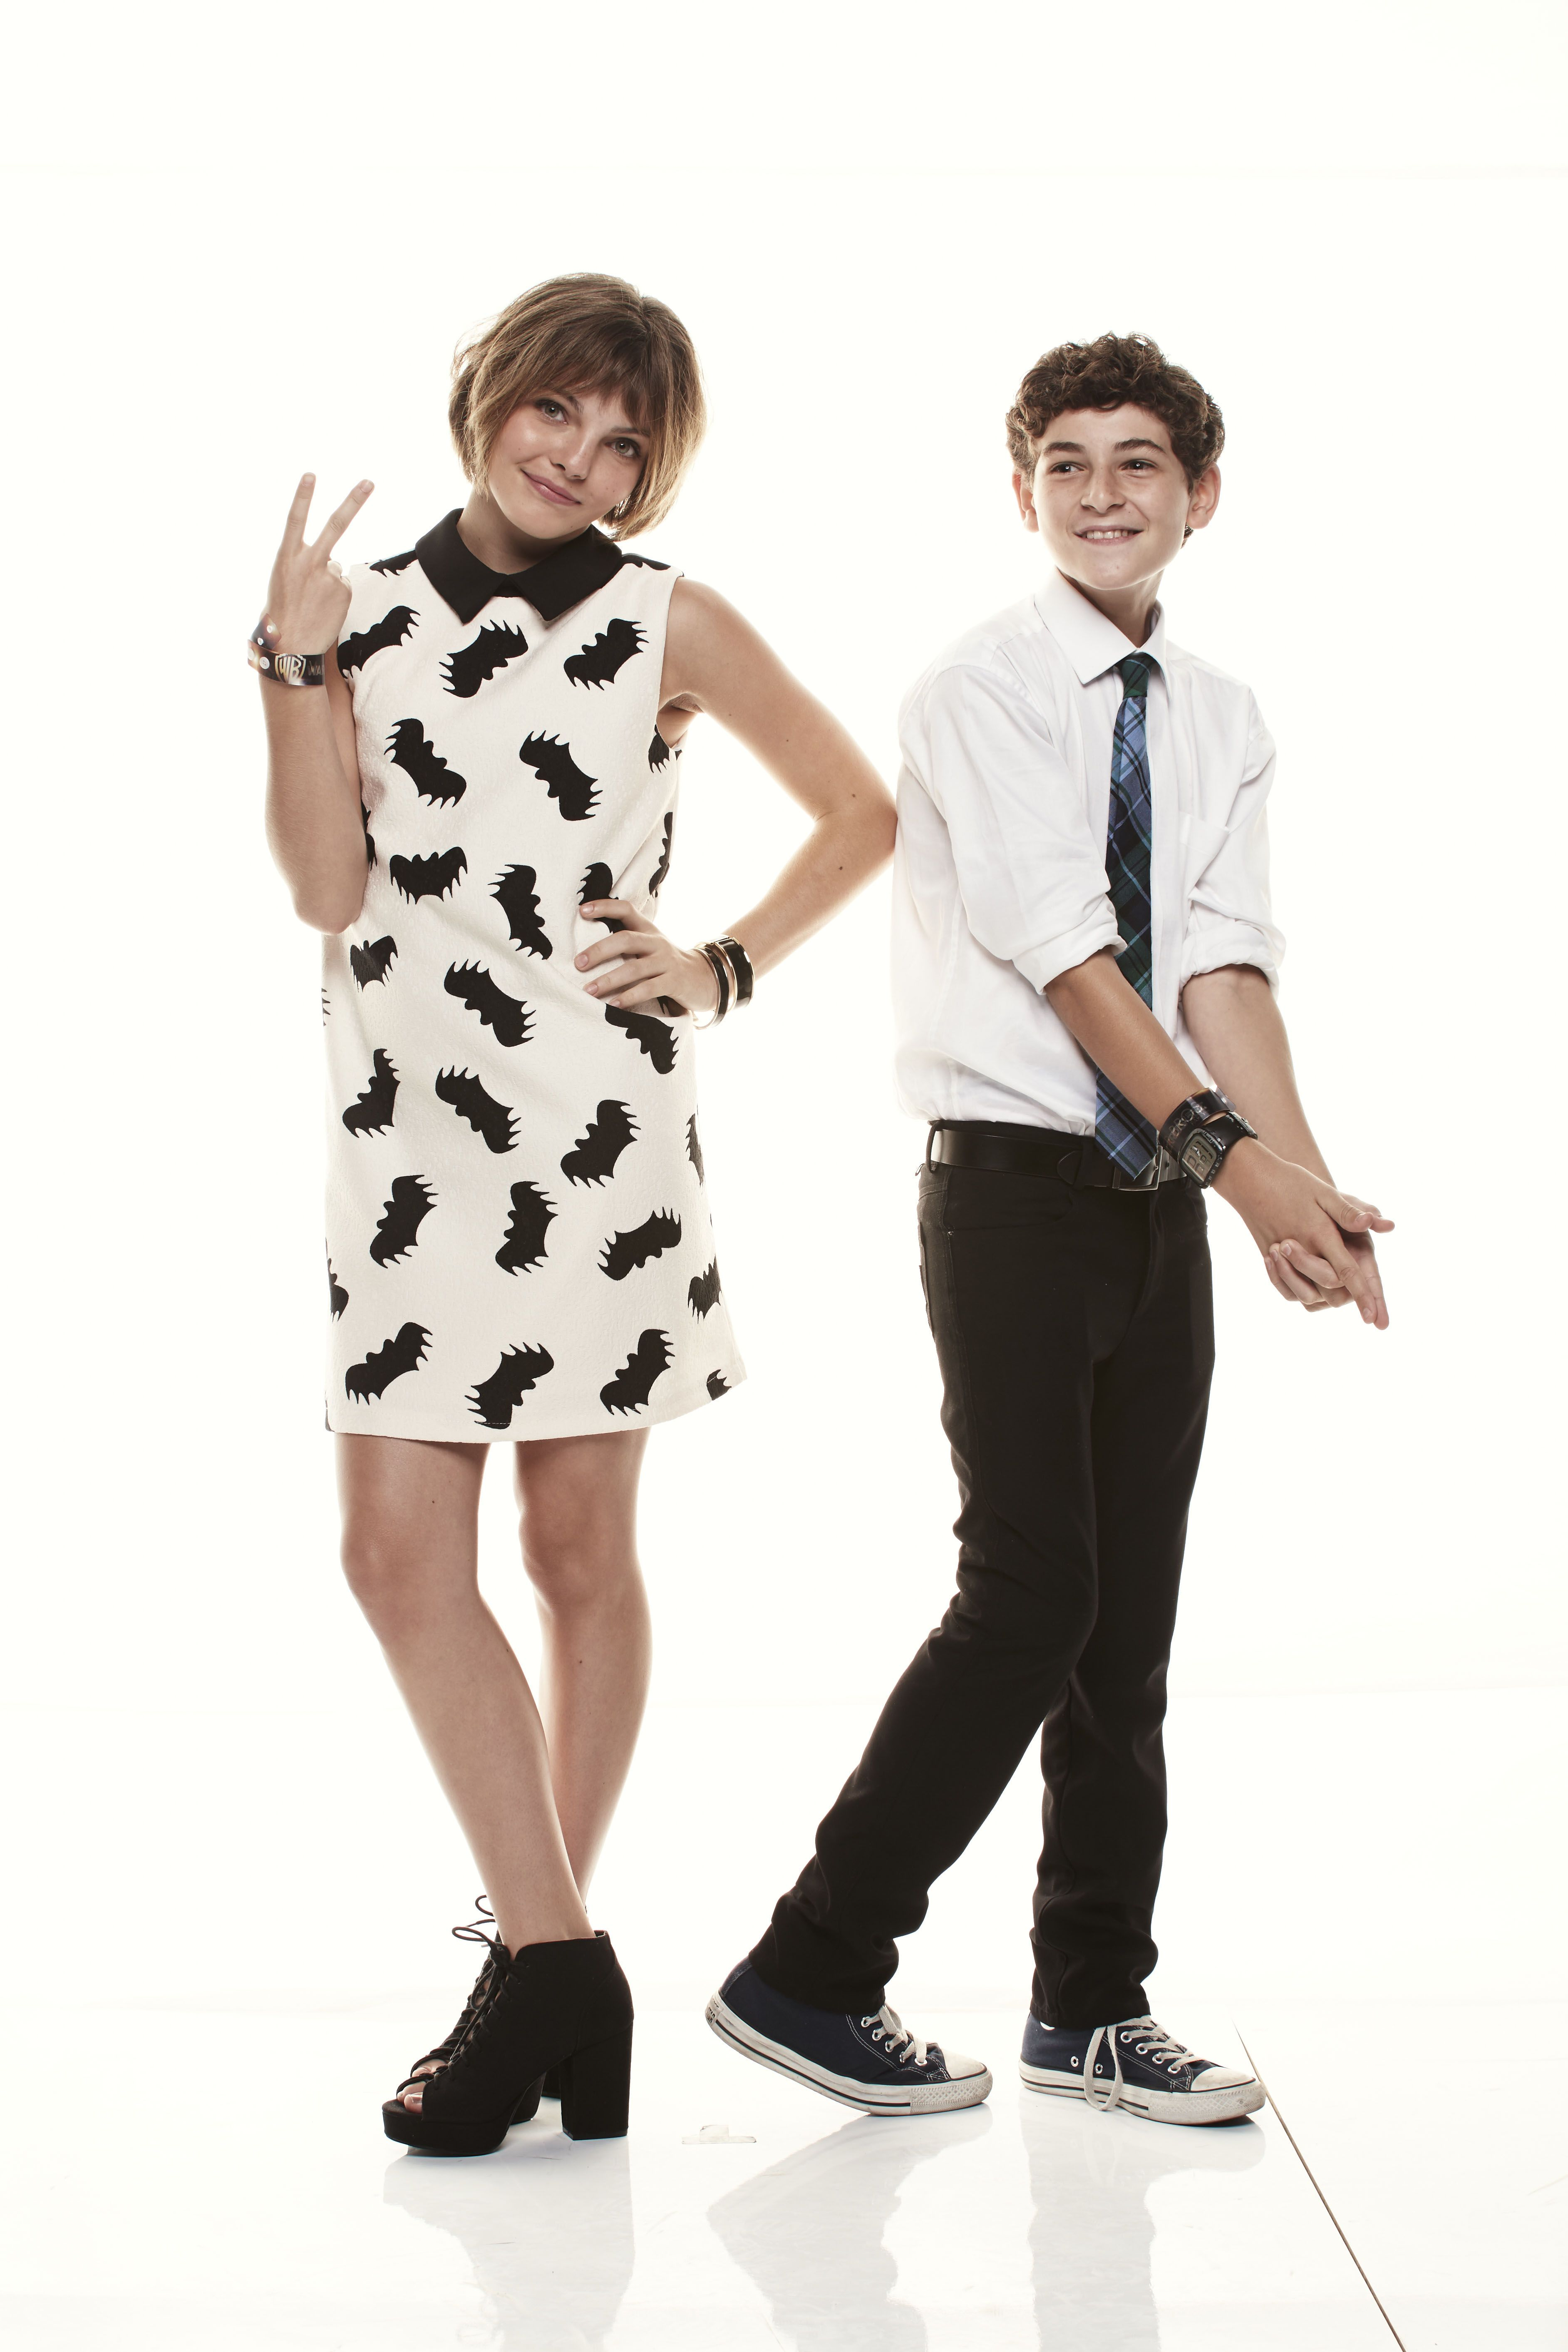 GOTHAM stars Camren Bicondova and David Mazouz visited the Warner Bros. Television Photo Studio at WBTV's Comic-Con cocktail media mixer at the Hard Rock Hotel's FLOAT Rooftop Bar on Friday, July 25. #WBSDCC